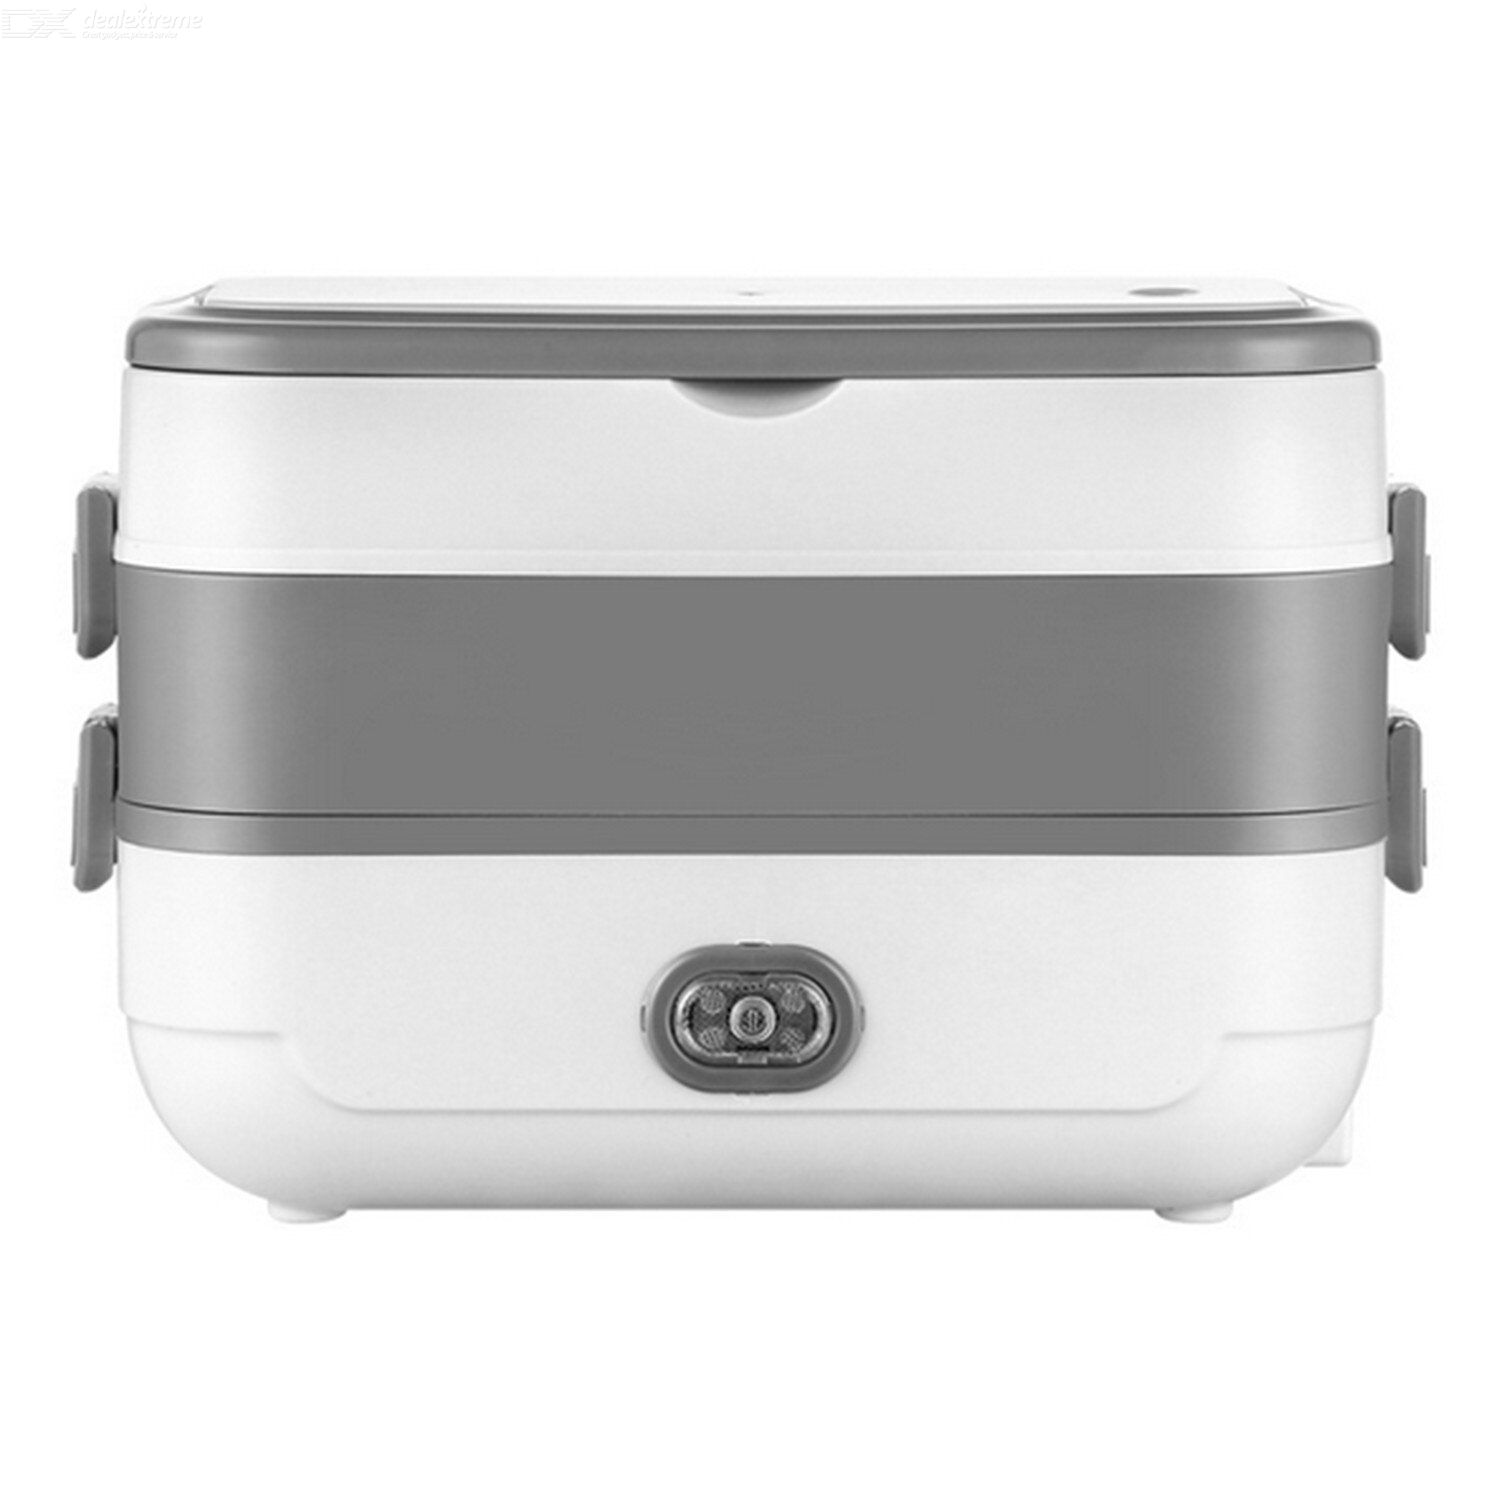 Multi functional electric rice box heat preservation cooking mini rice cooker double layer